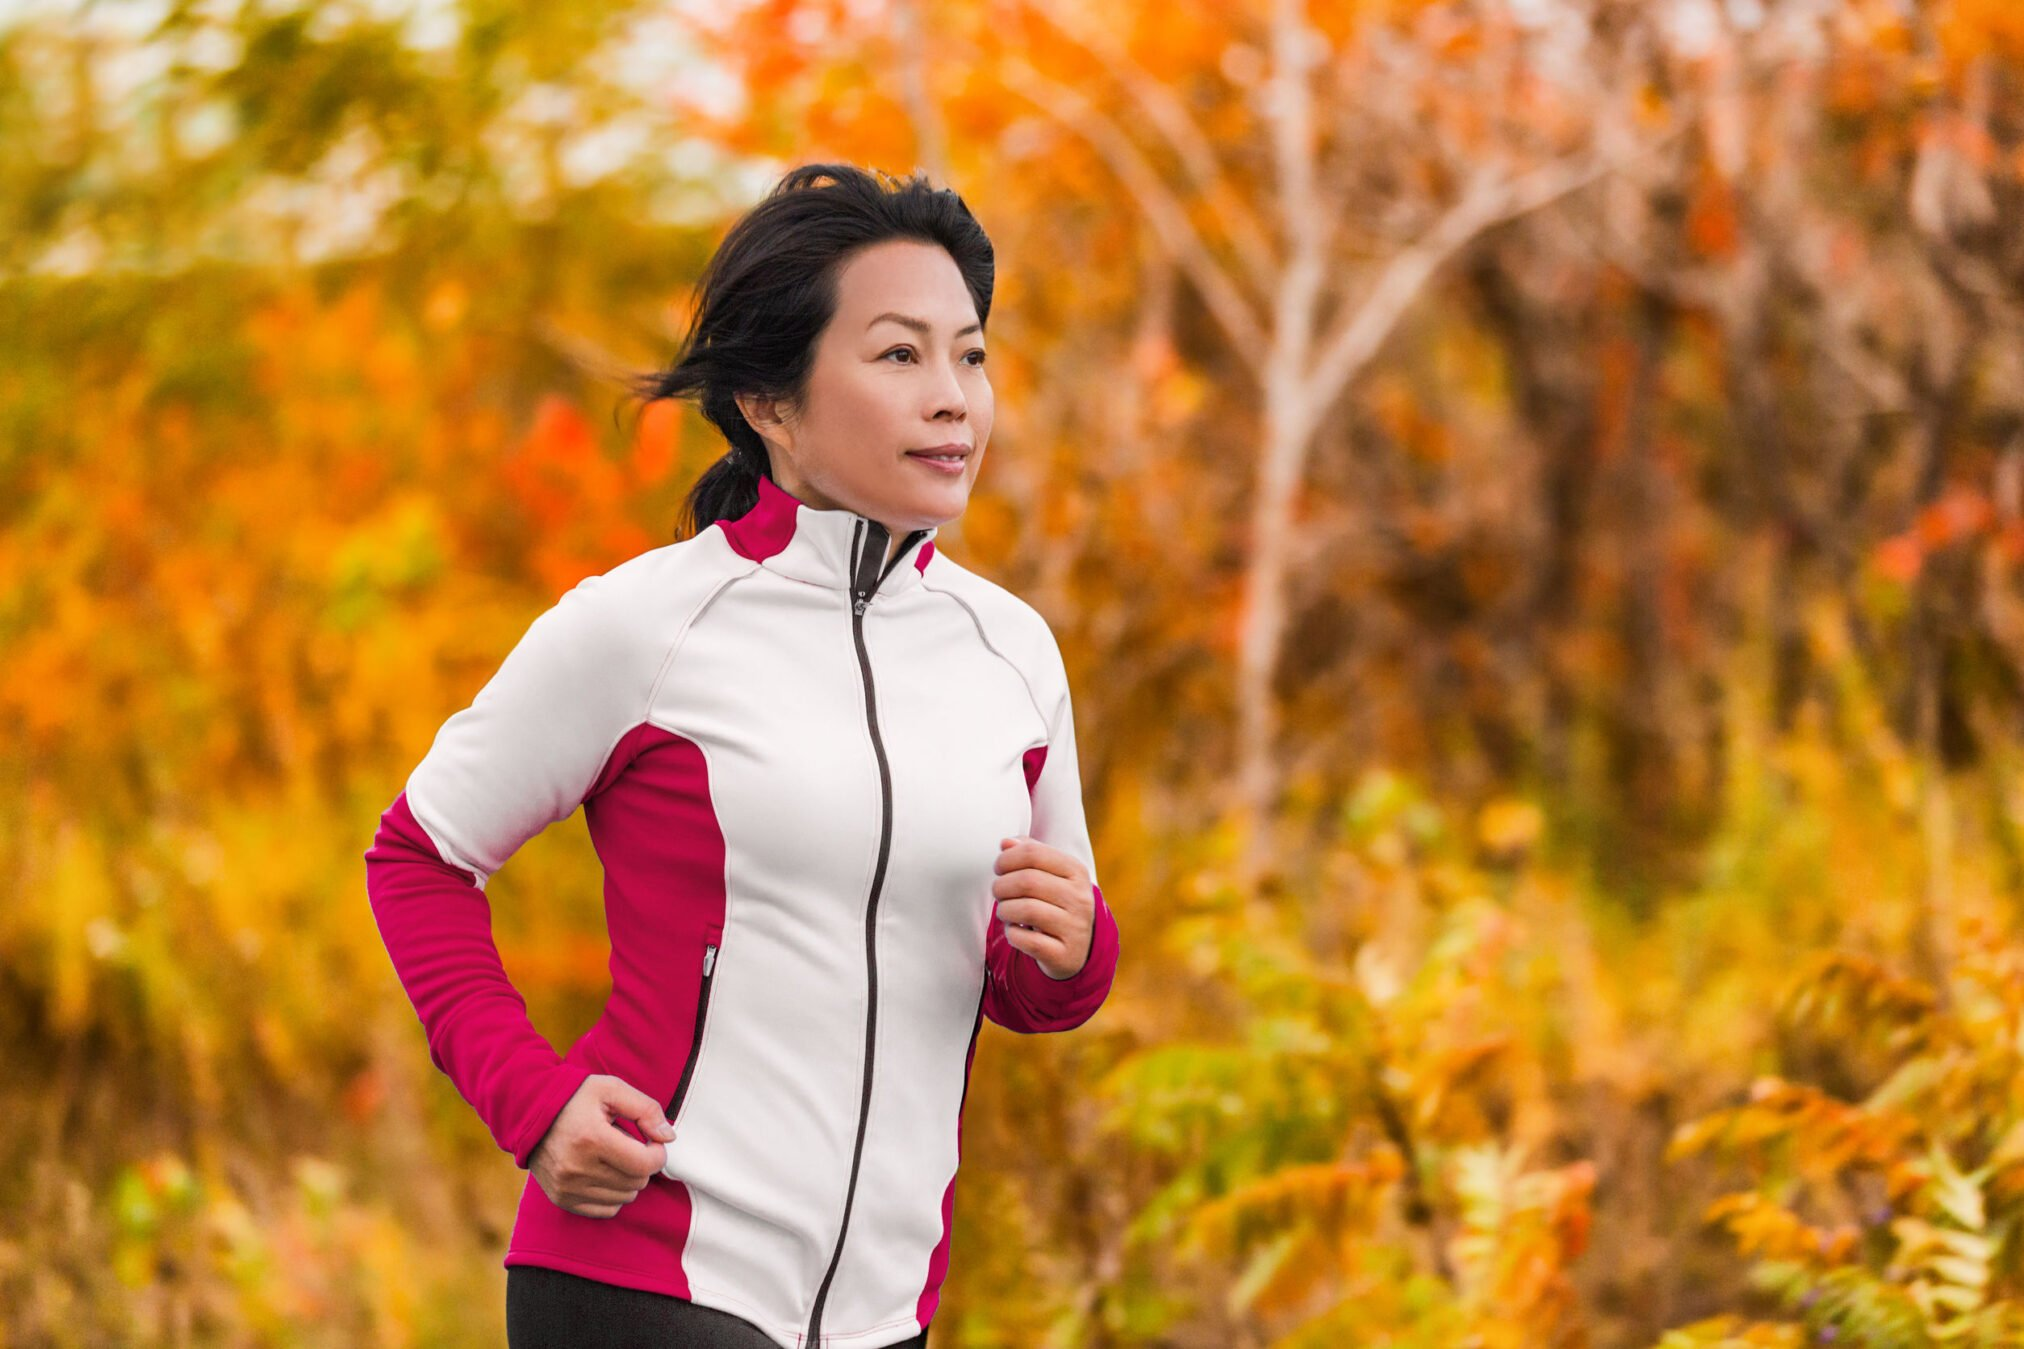 Fiftysomething woman going for jog against autumn background